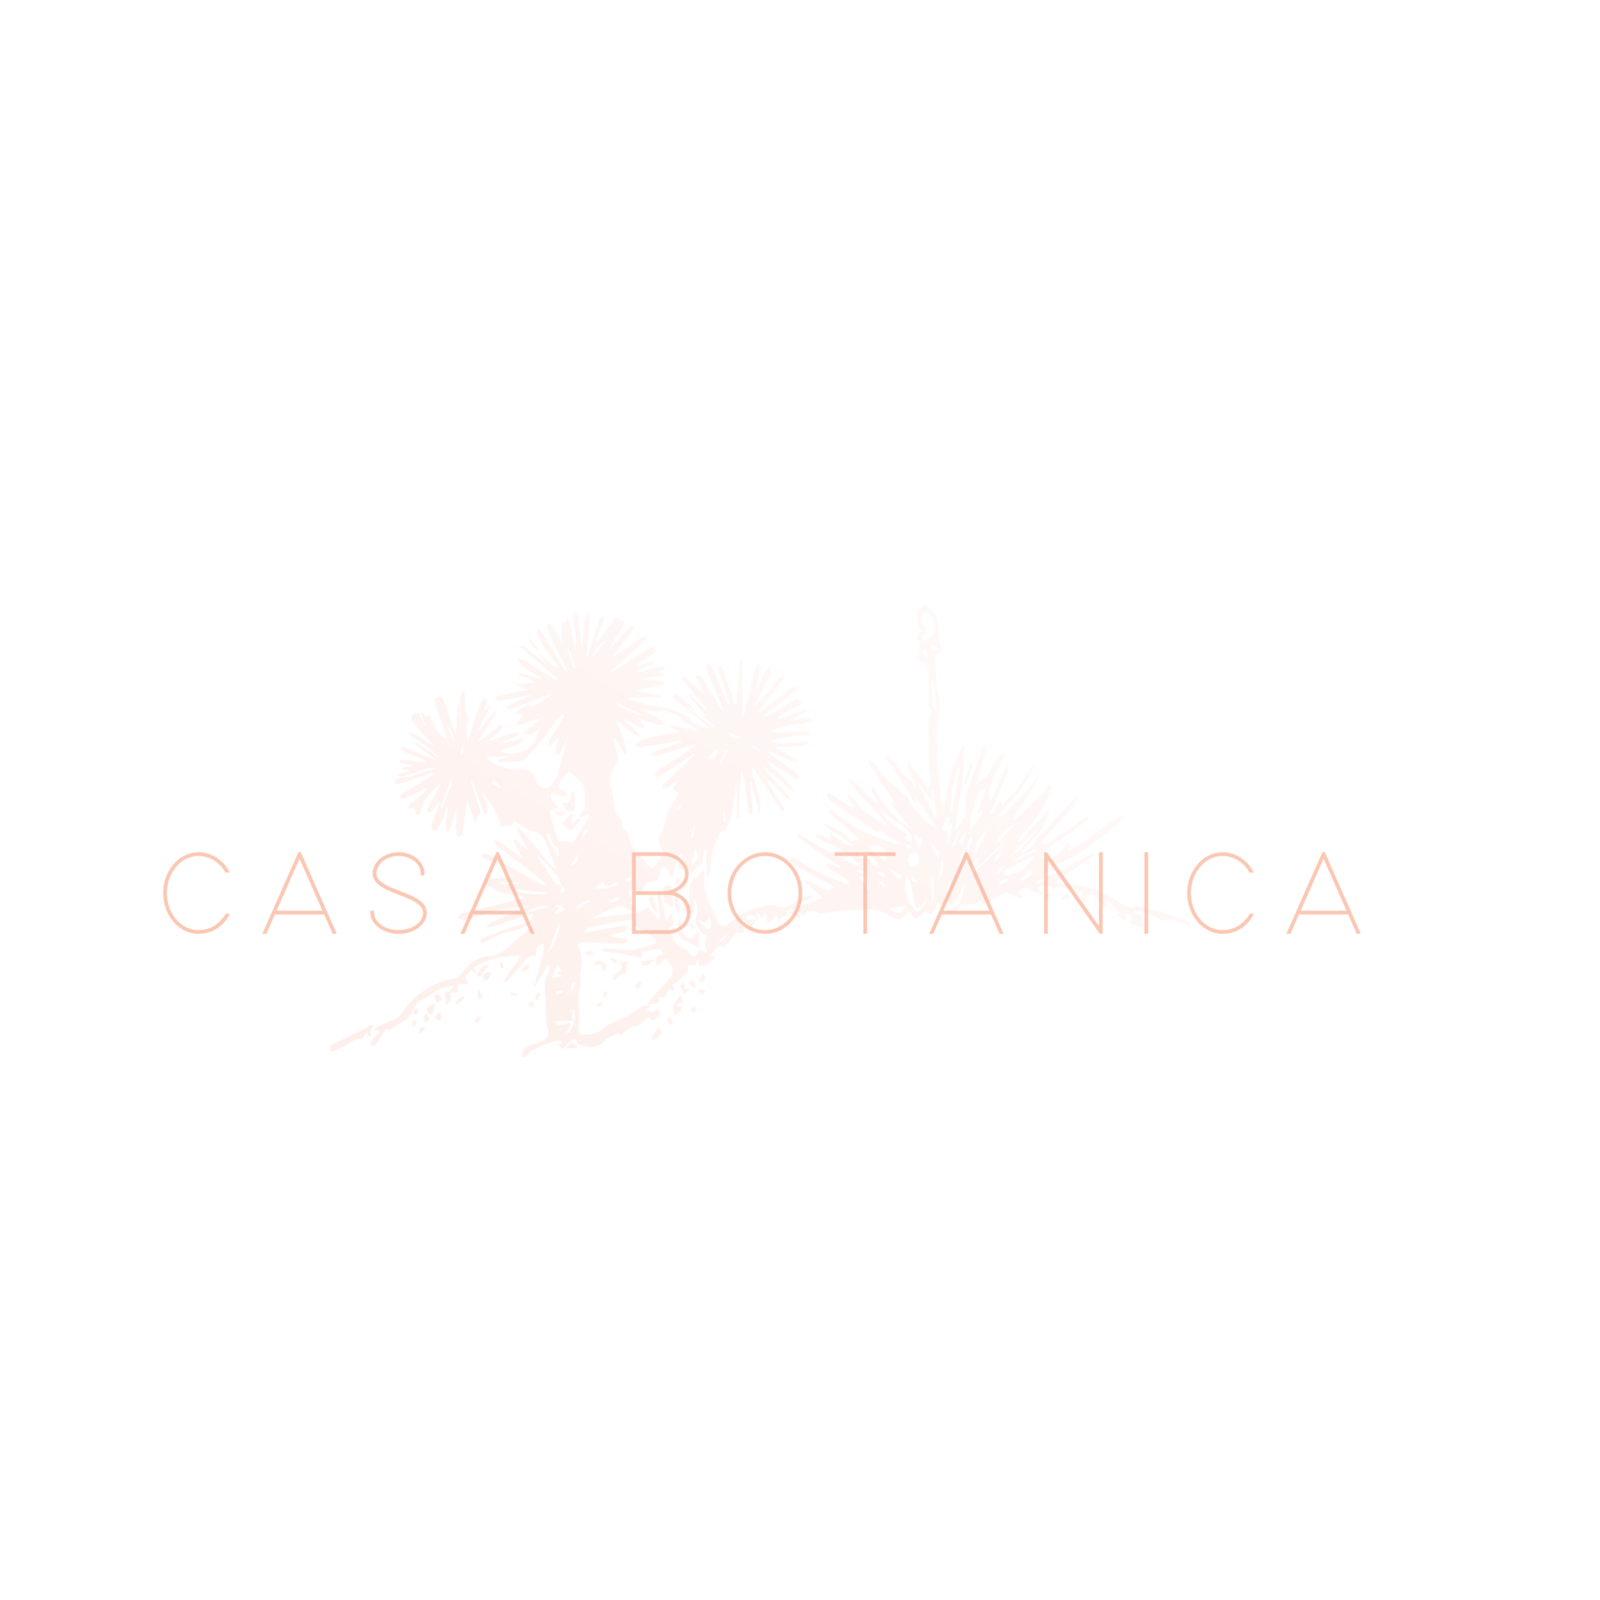 Casa-Botanica-Alternate-Logo